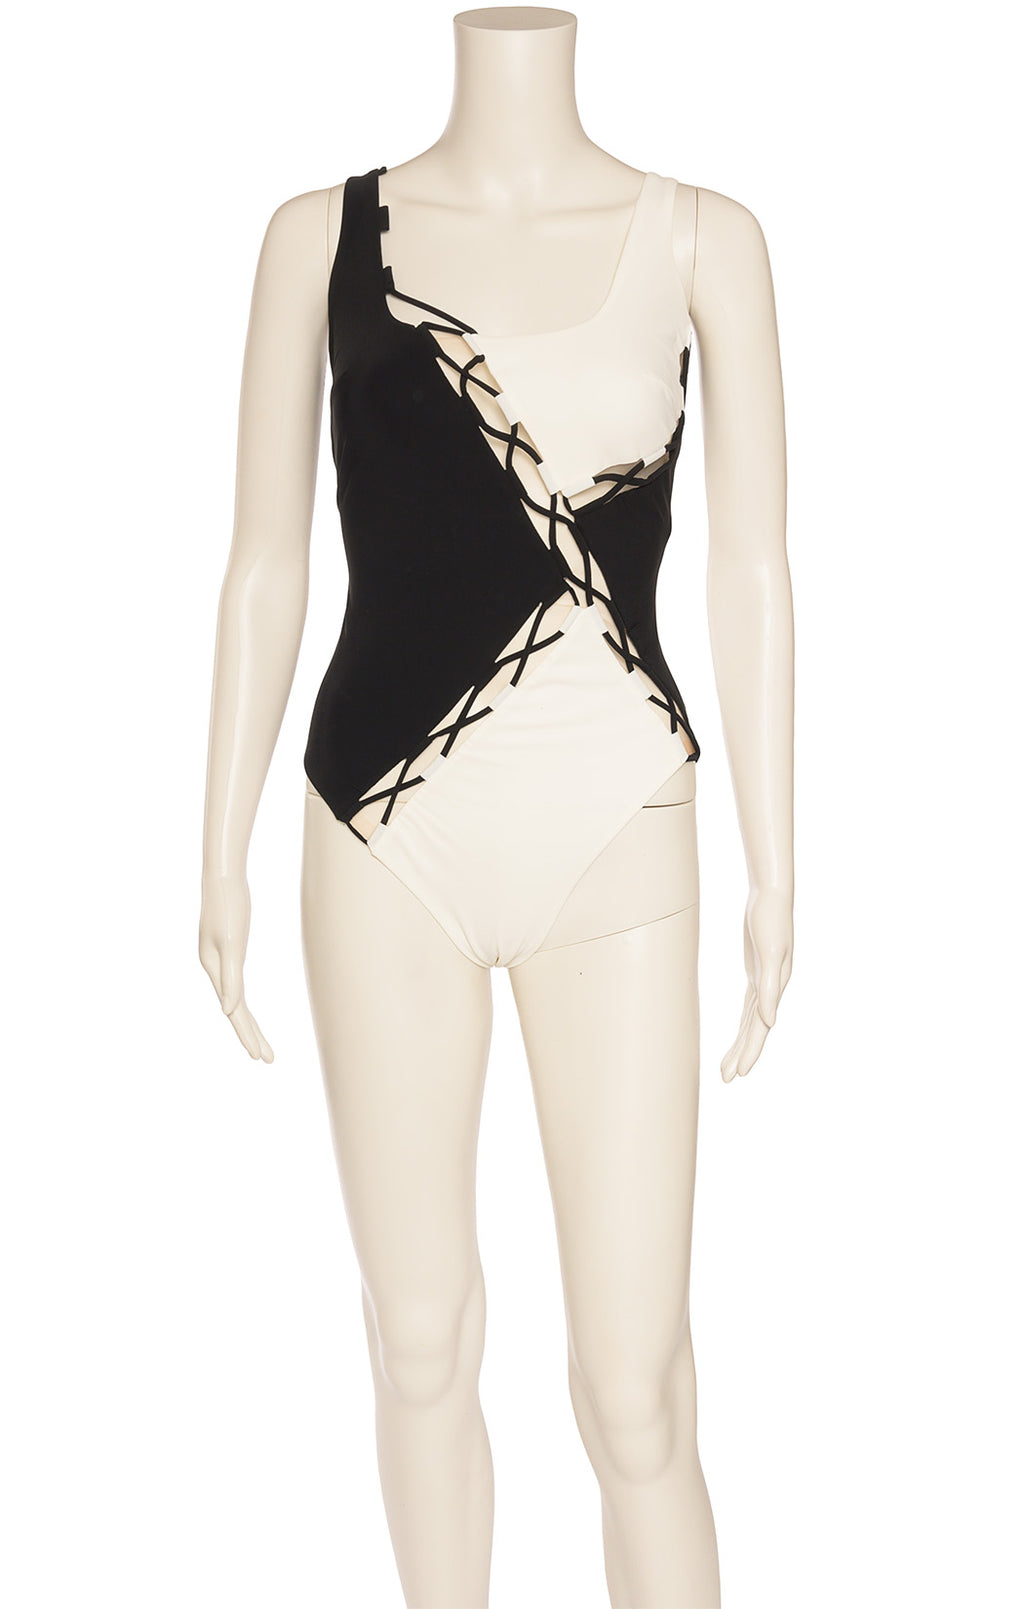 Front View of AGENT PROVOCATEUR with tags One piece bathing suit  Size: 4